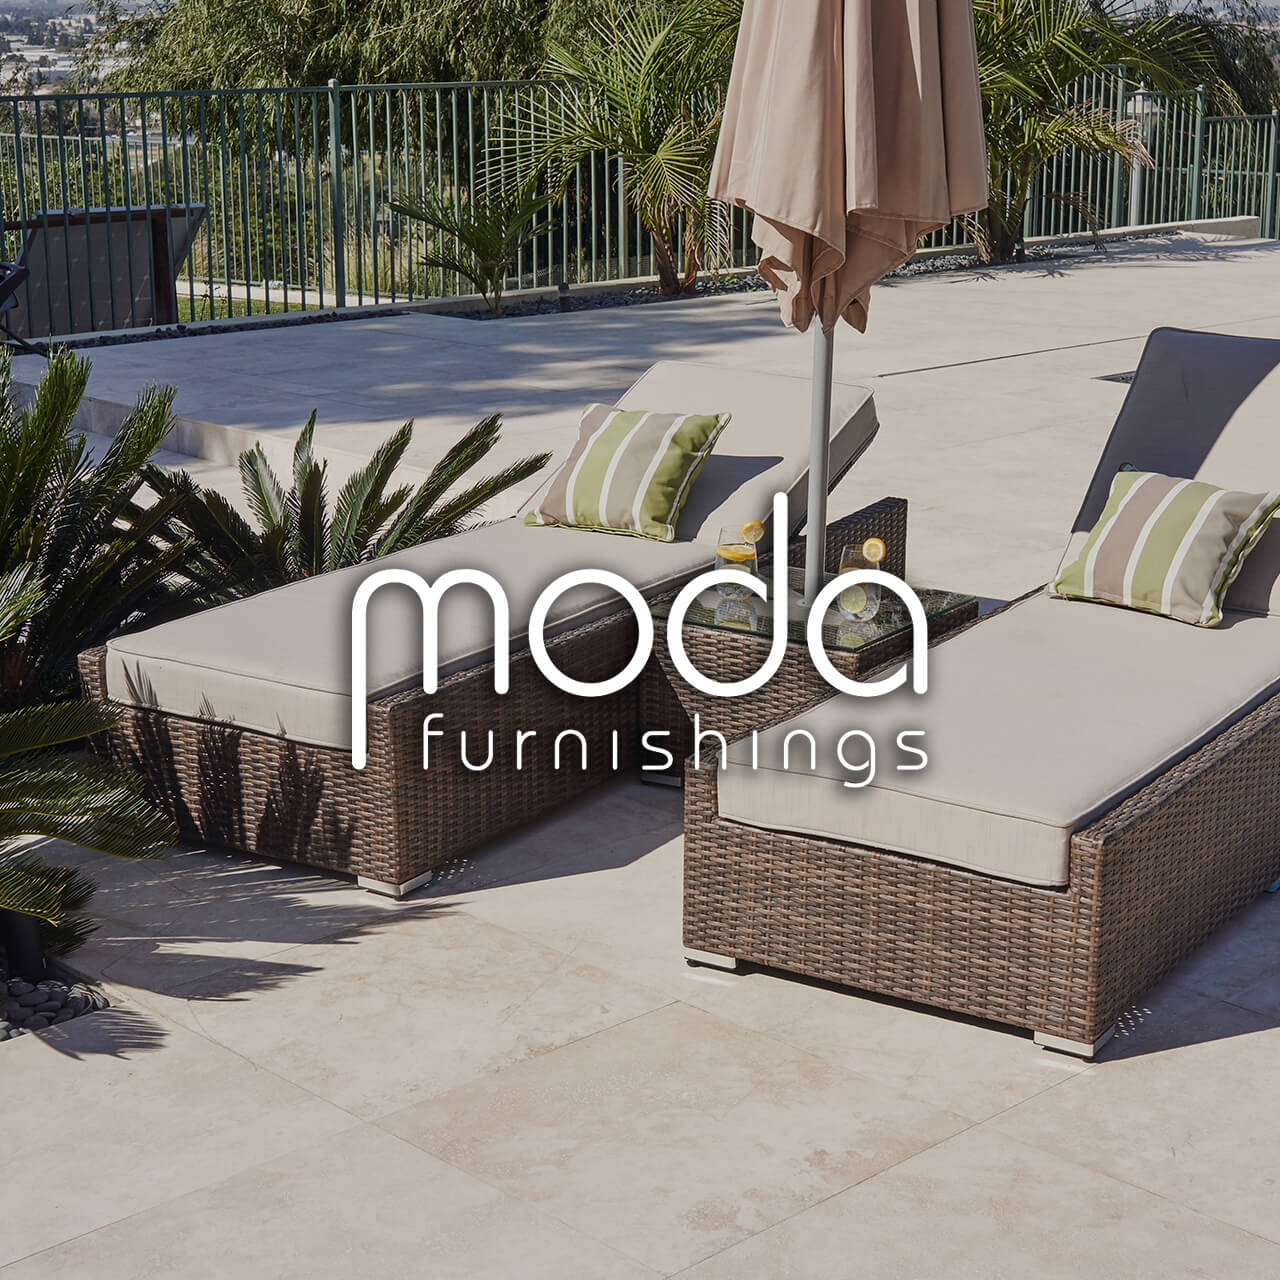 Moda Furnishings for MKTG